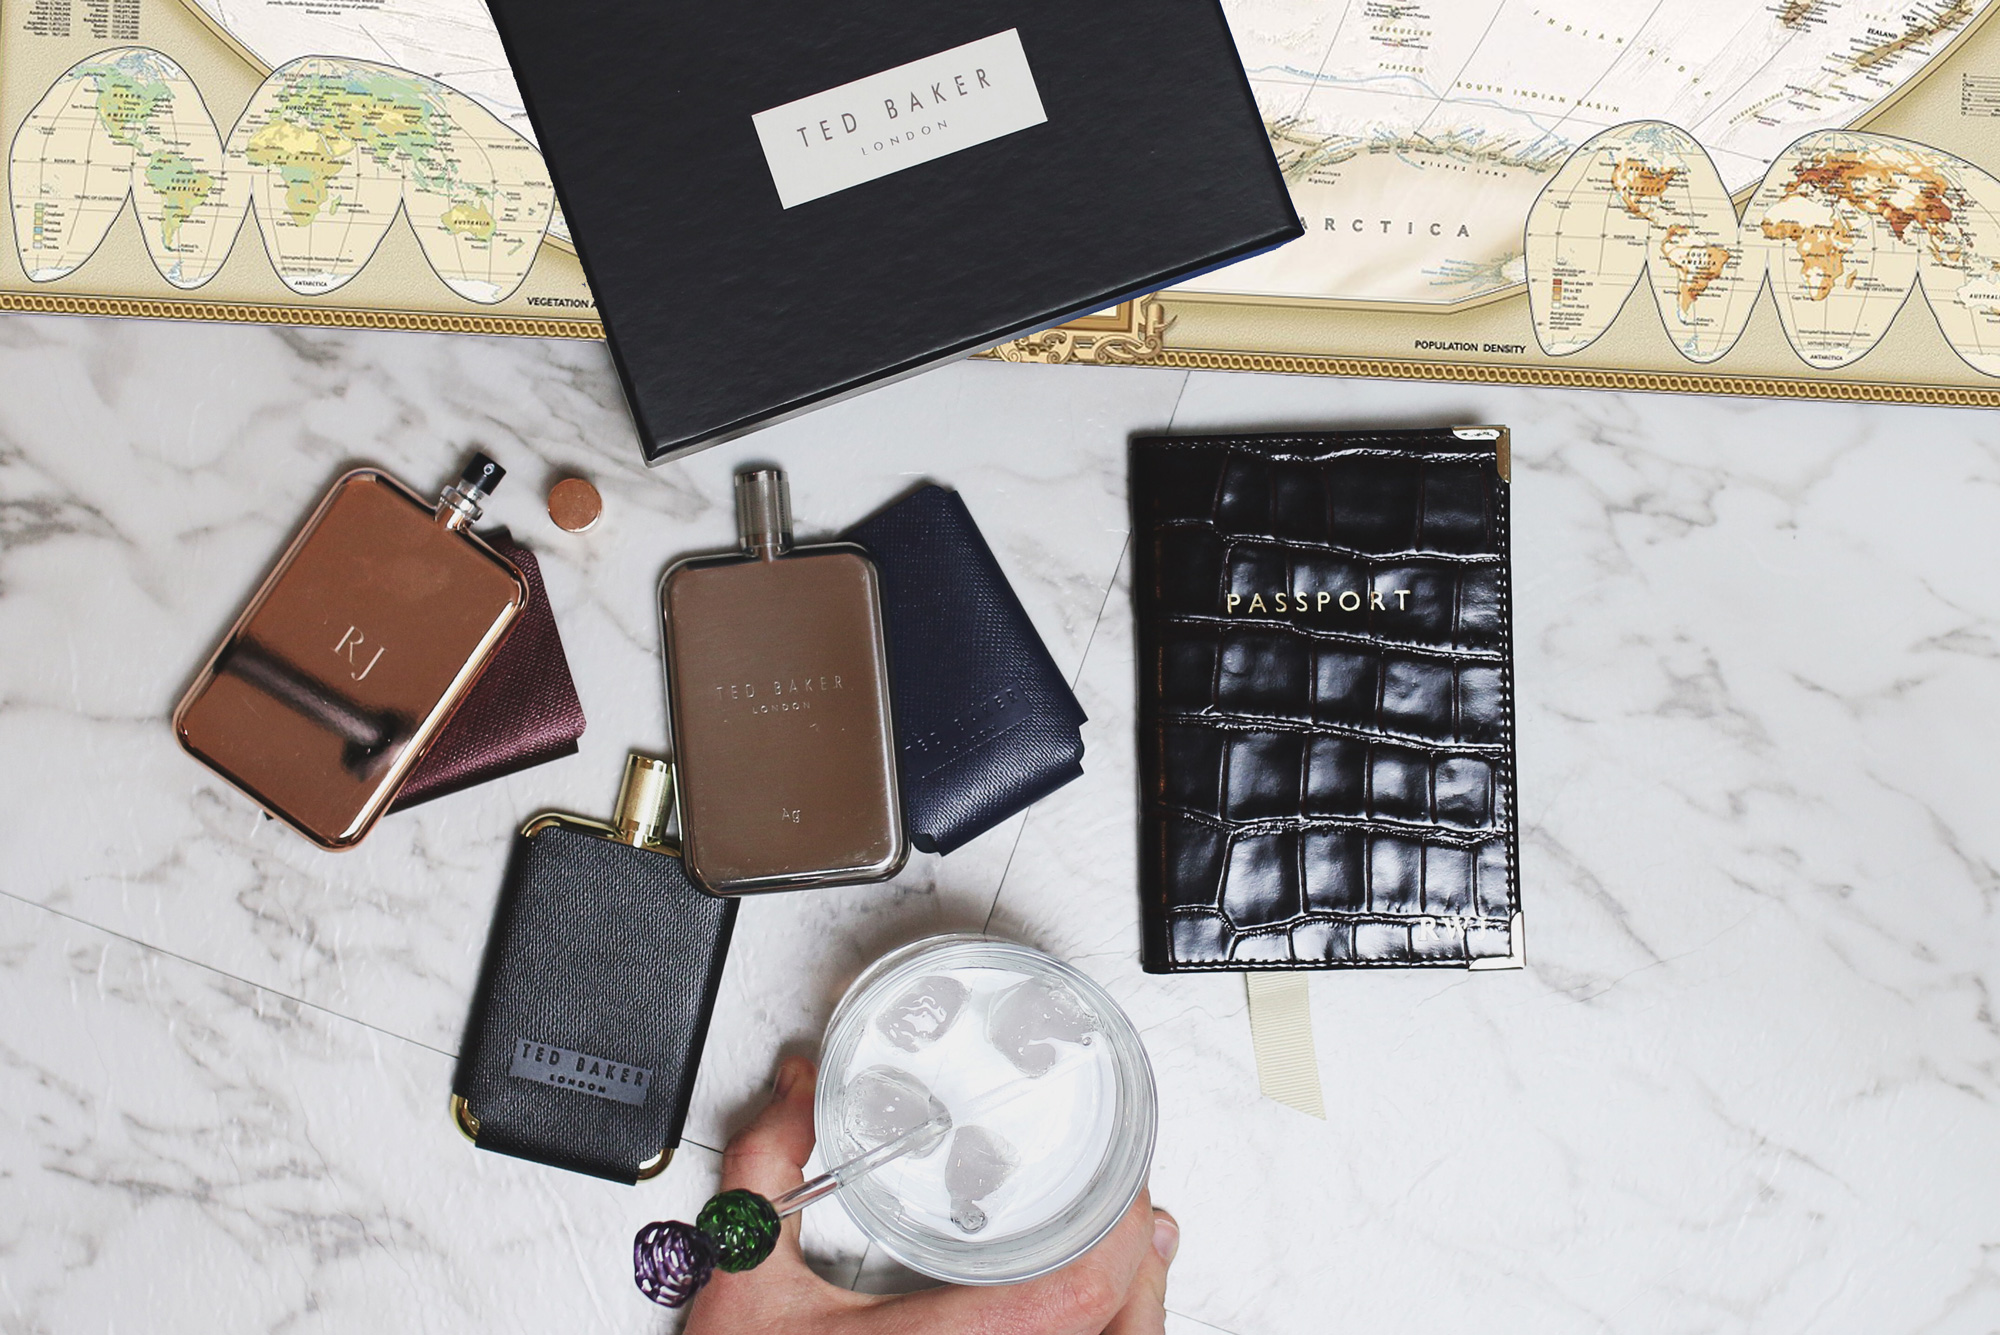 Ted-Baker-Travel-Tonics-Man-For-Himself-Map